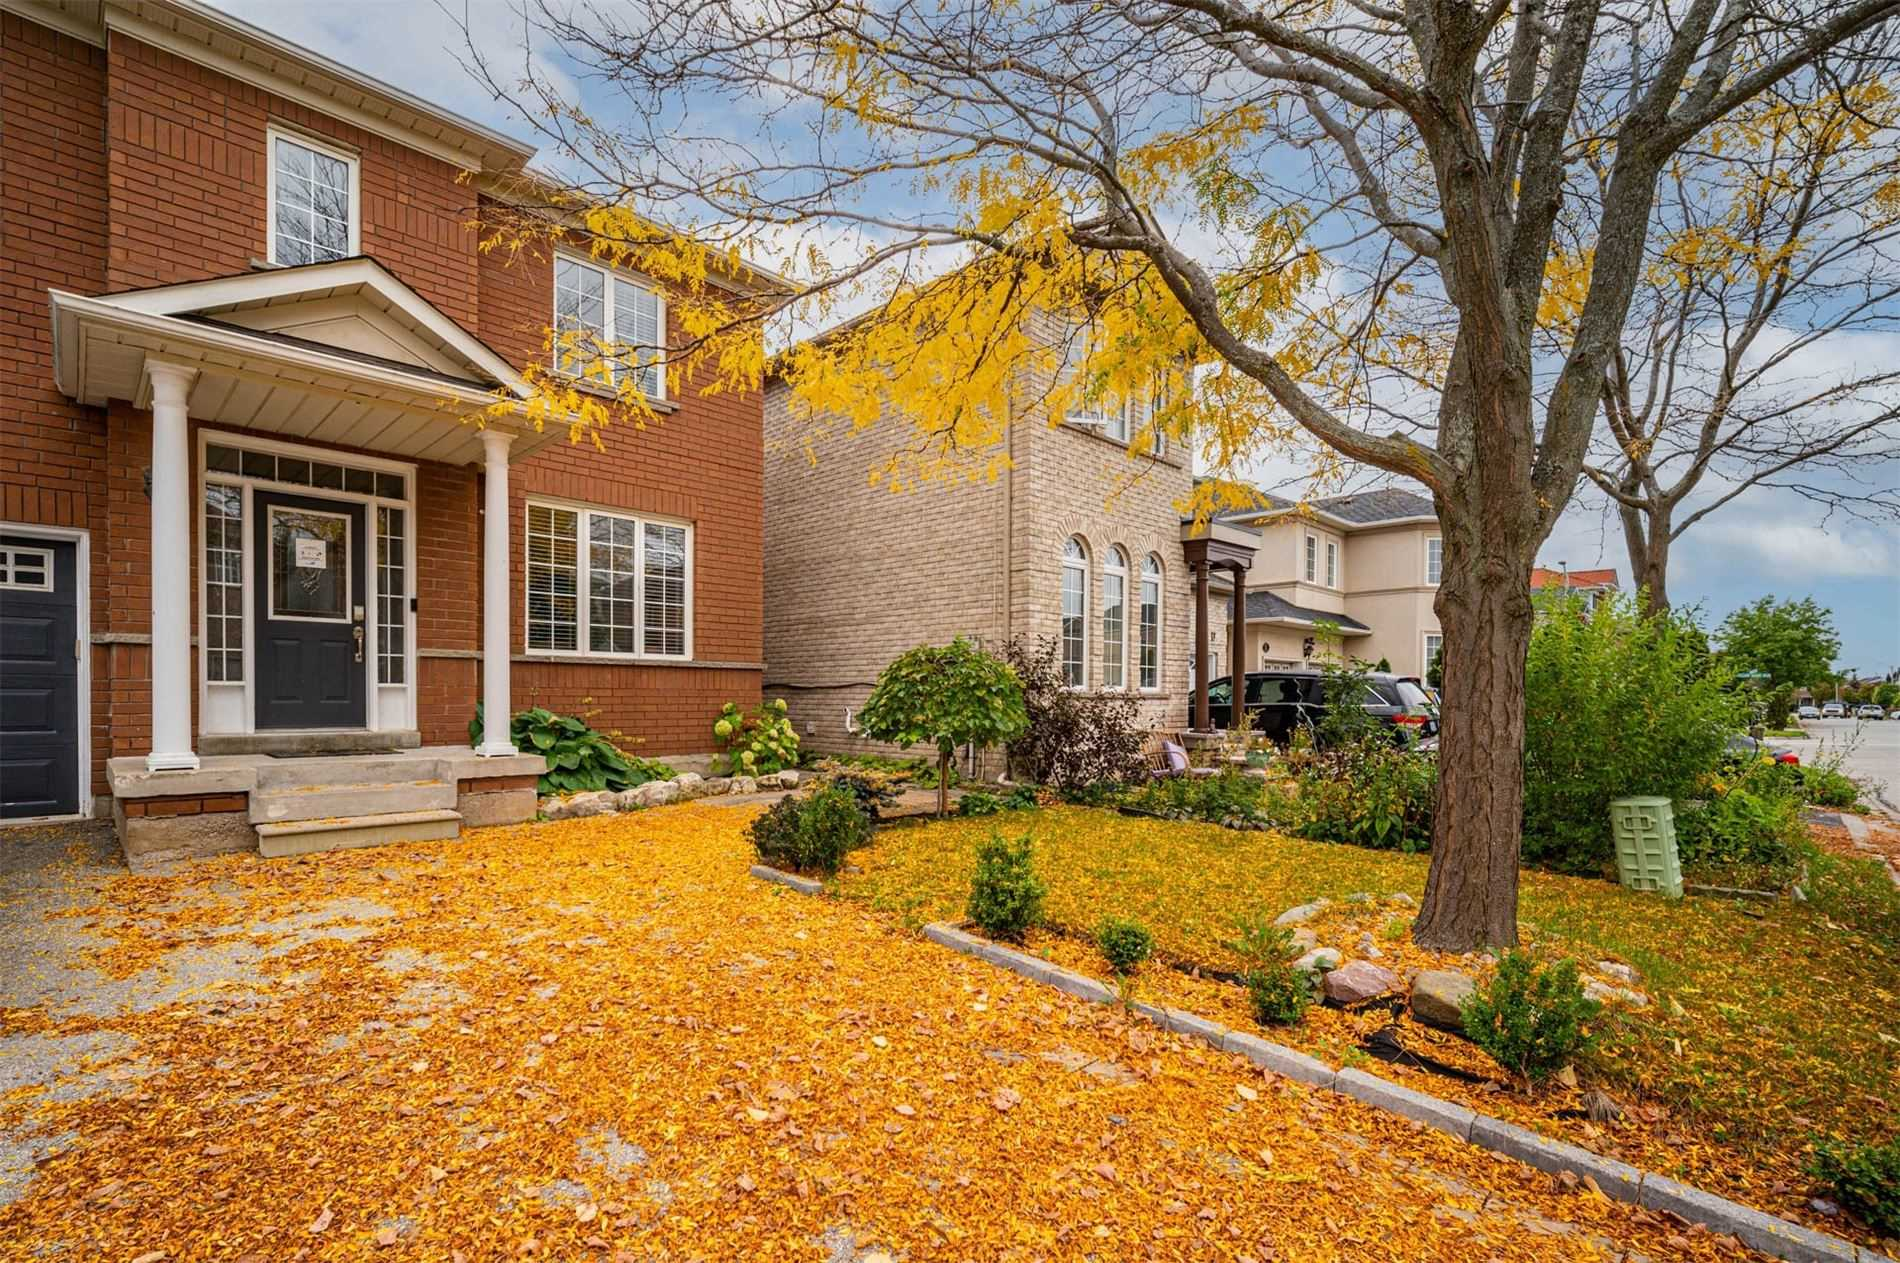 Detached house For Lease In Vaughan - 11 Rusty Tr, Vaughan, Ontario, Canada L4H 2E7 , 1 Bedroom Bedrooms, ,1 BathroomBathrooms,Detached,For Lease,Bsmnt,Rusty